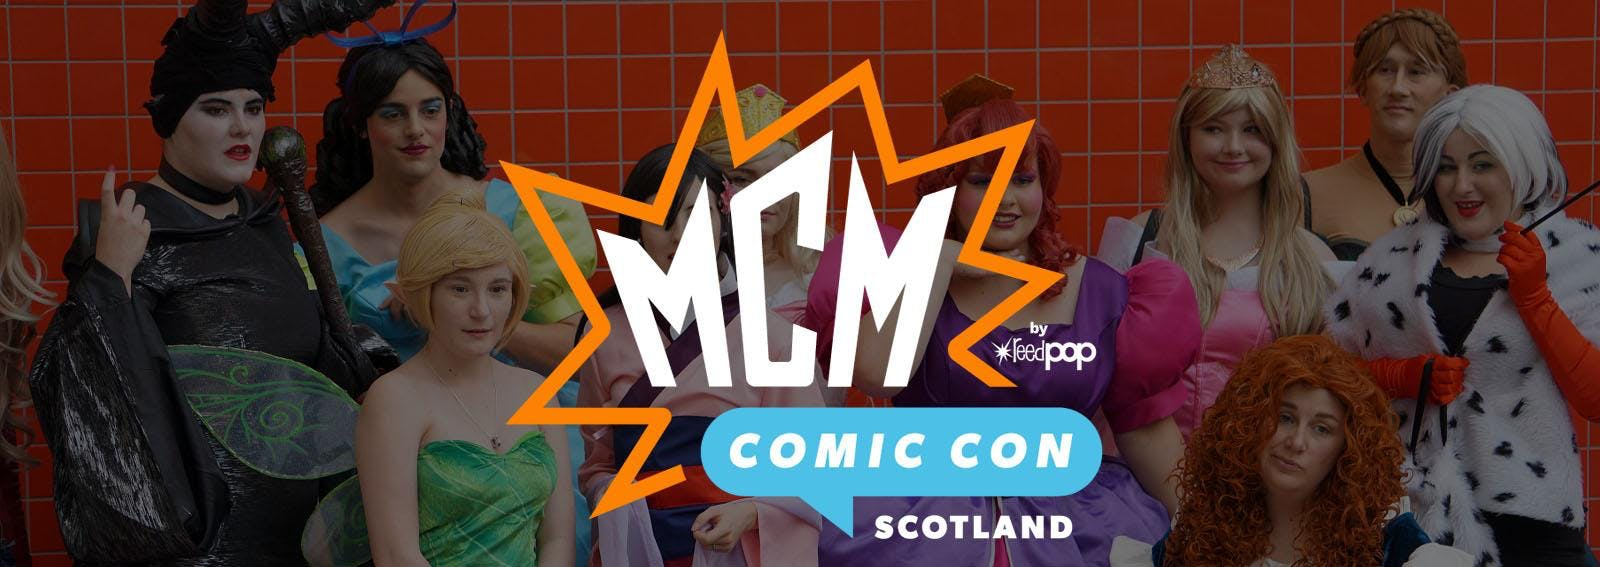 MCM Scotland Comic Con Event Parking